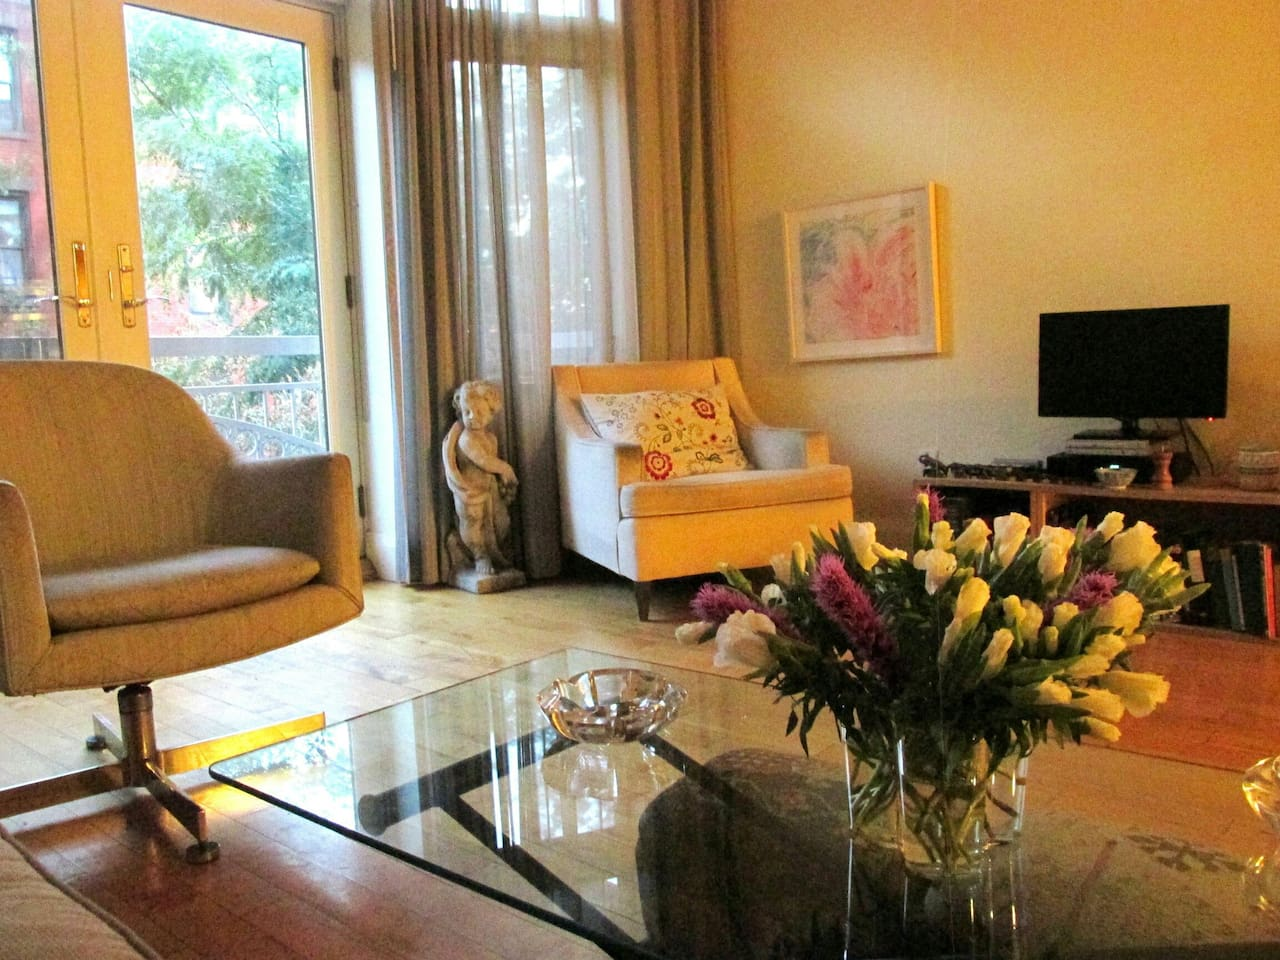 Welcome to Our Large, Sunny 2 Bedroom, 2 Bathroom Park Slope Condominium